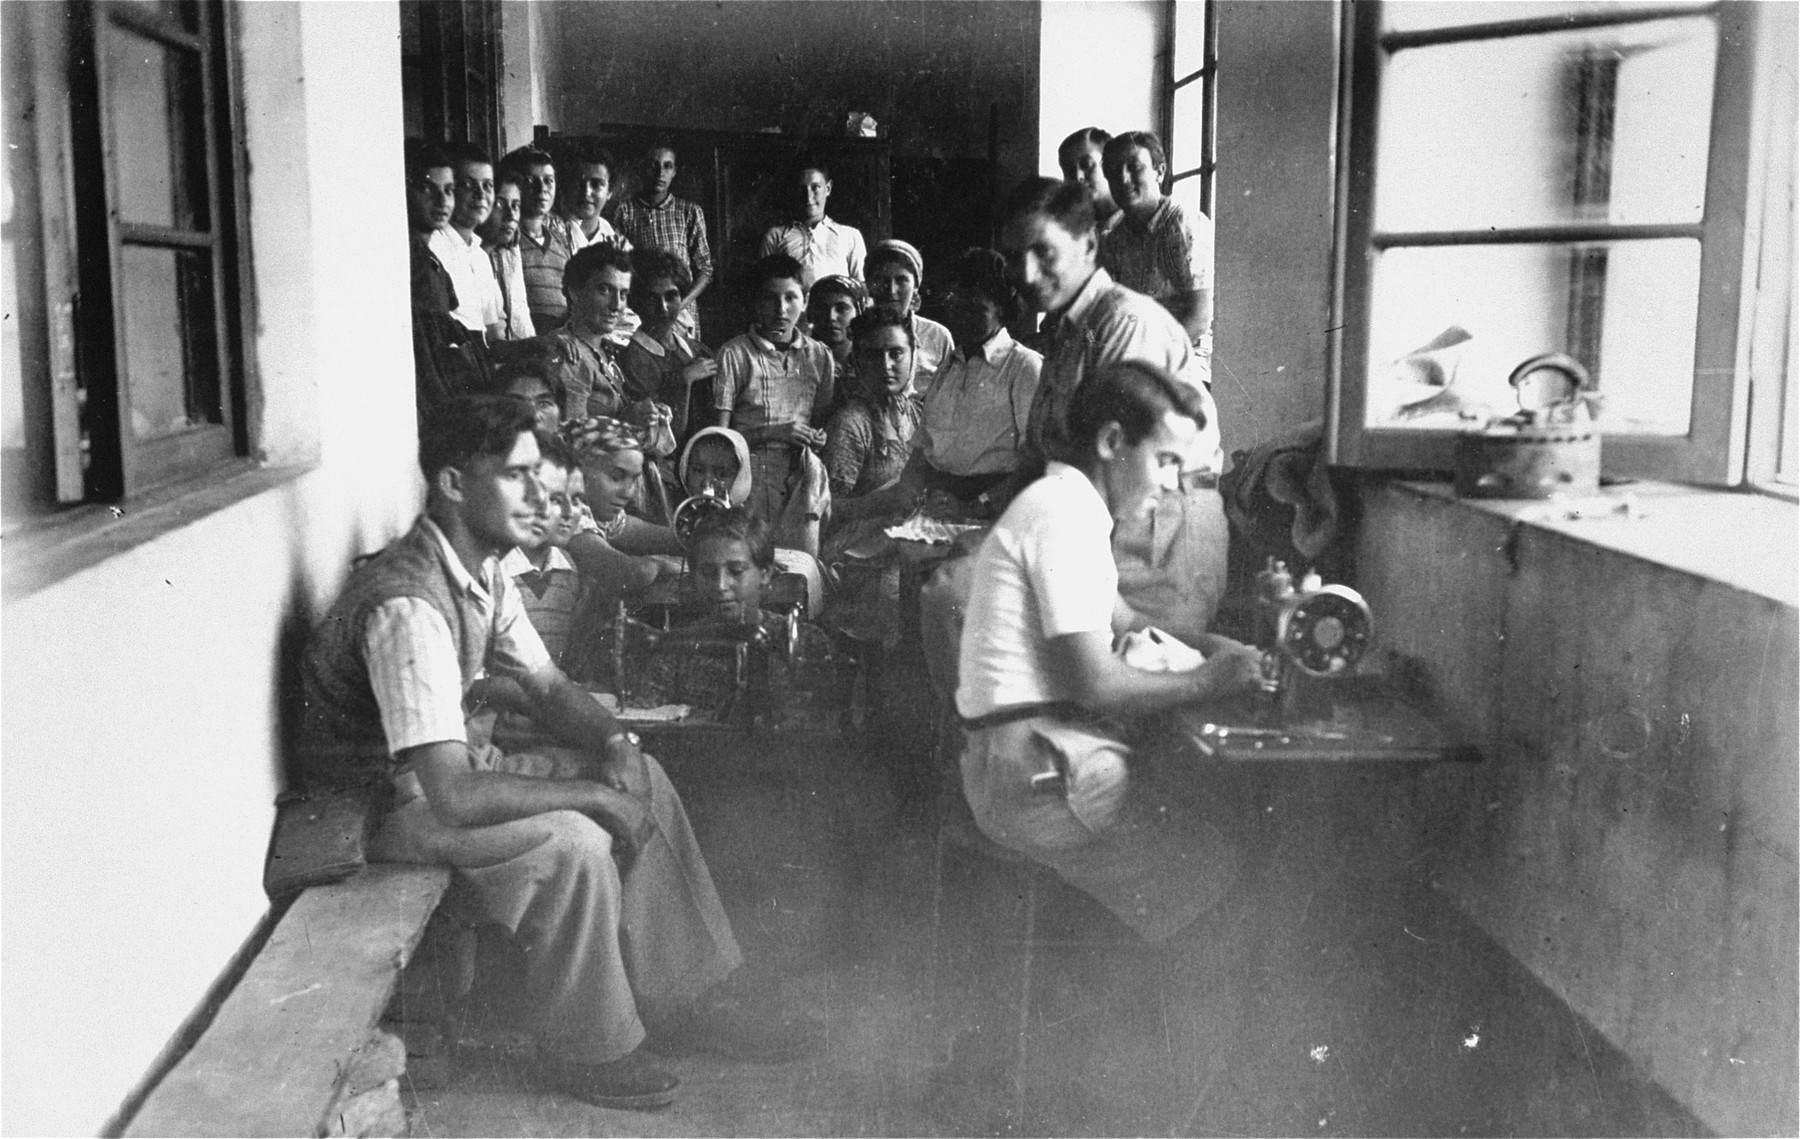 Members of the Teheran children's transport participate in a tailoring workshop at the refugee camp in Teheran.  Among those pictured are: David Laor (seated on the bench at the left) and Israel Goldstein (seated at the sewing machine).